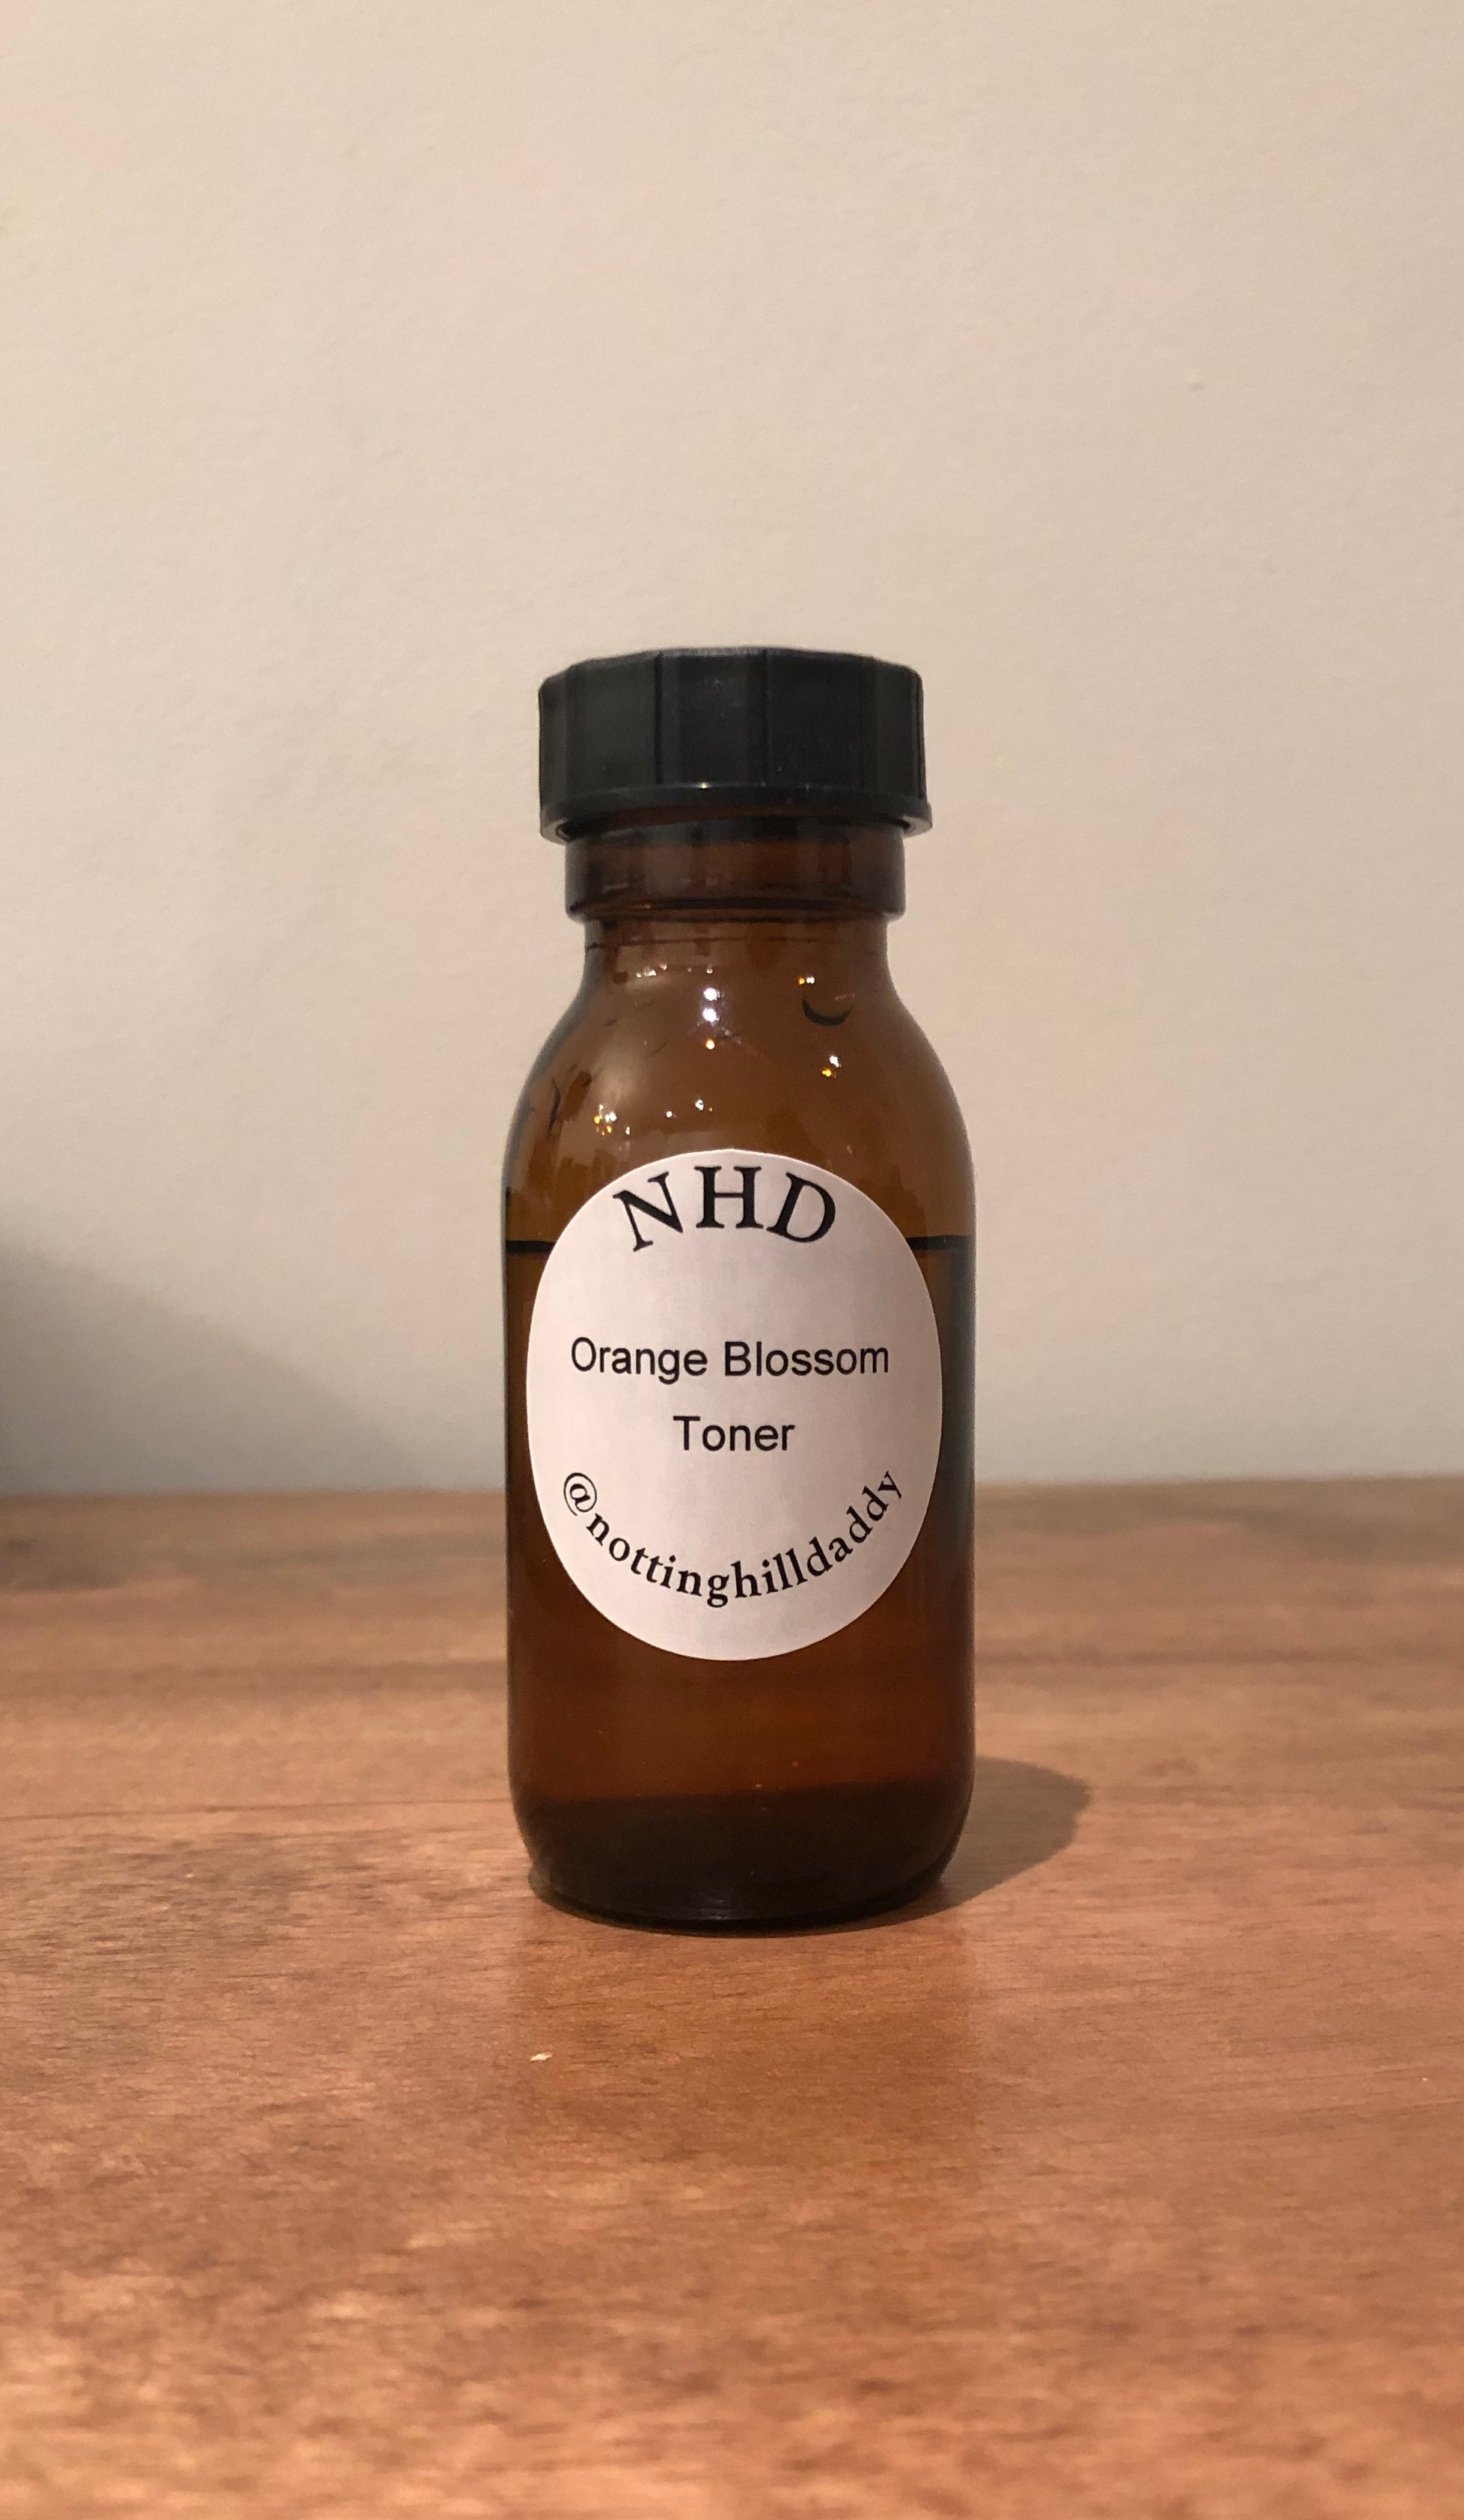 NHD Orange Blossom Toner